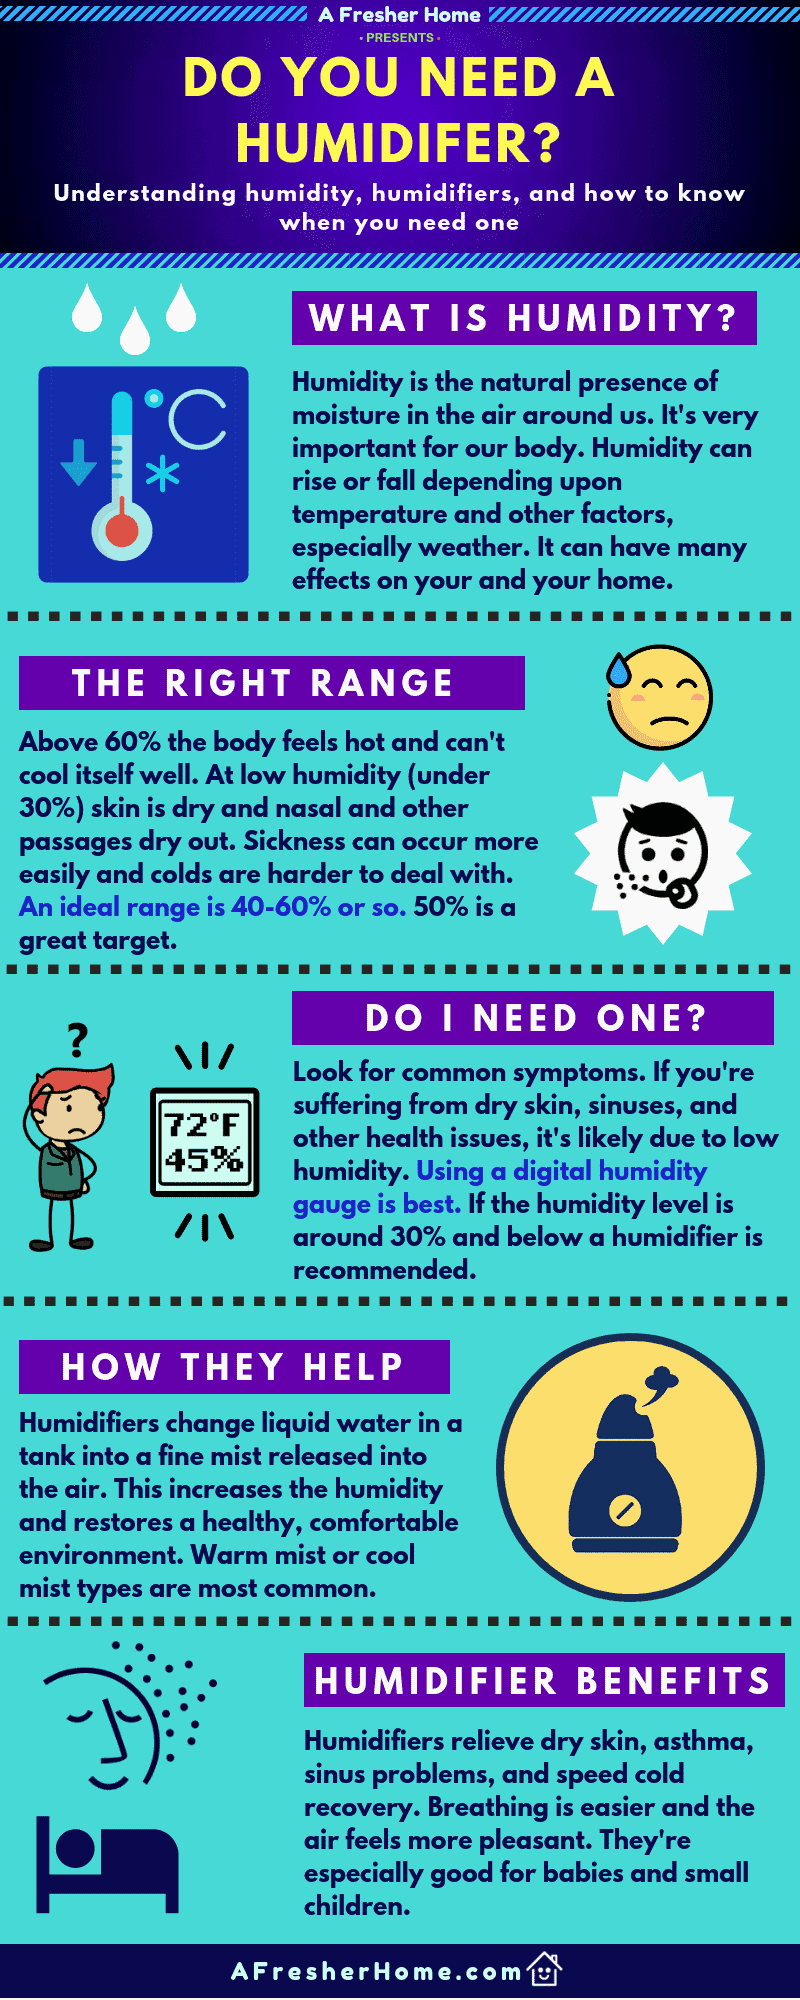 do-you-need-a-humidifier-infographic